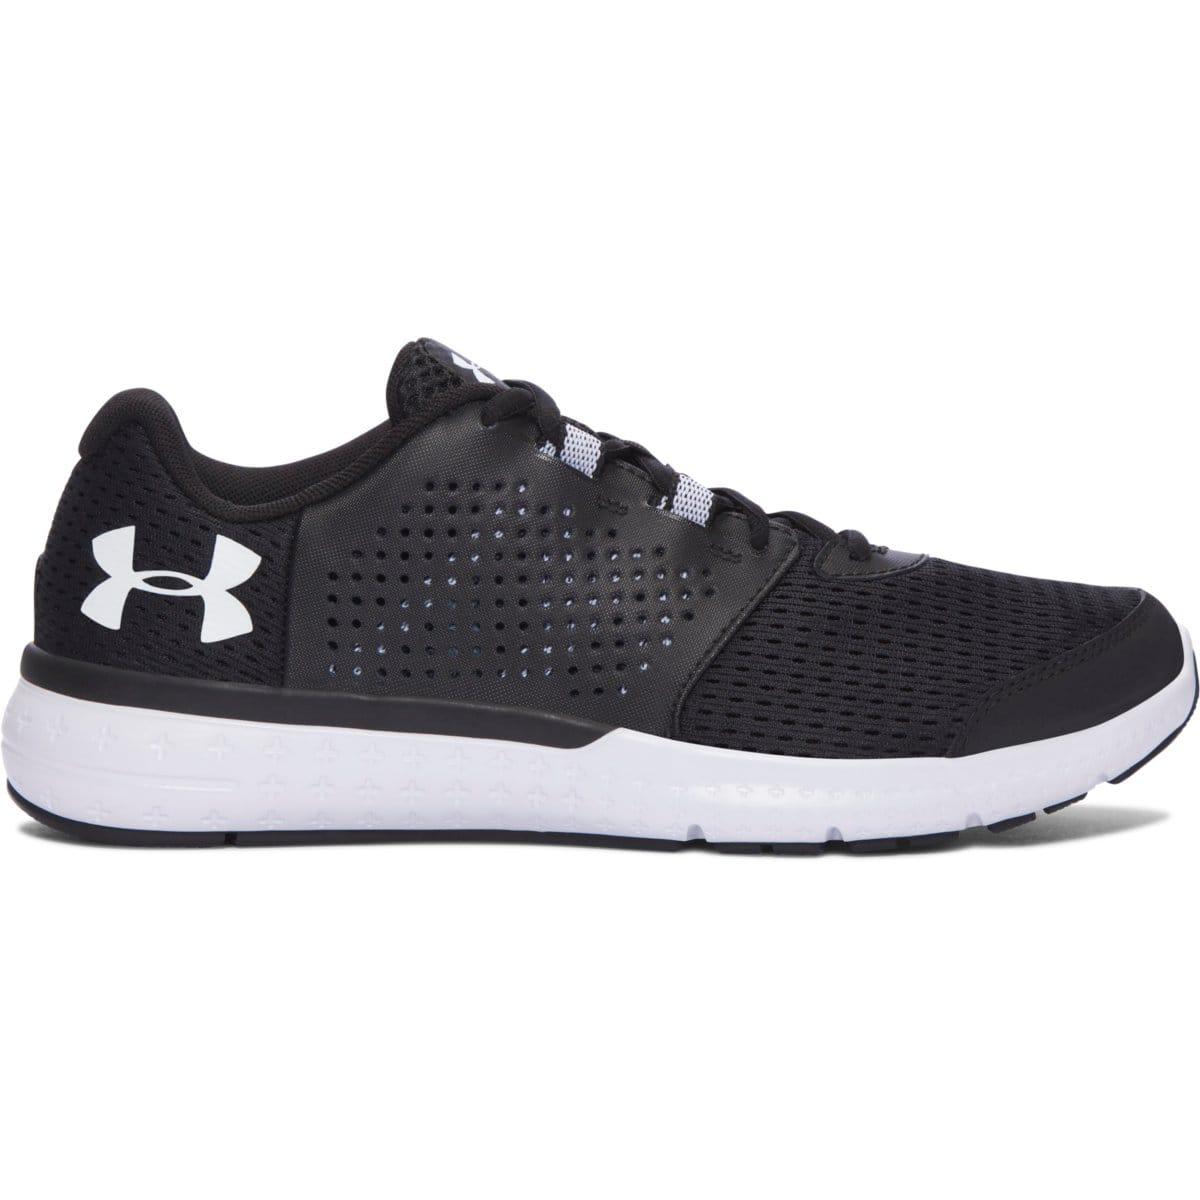 Under Armour - Men's Micro G Fuel Running Shoes Extra 20% Off $40.72